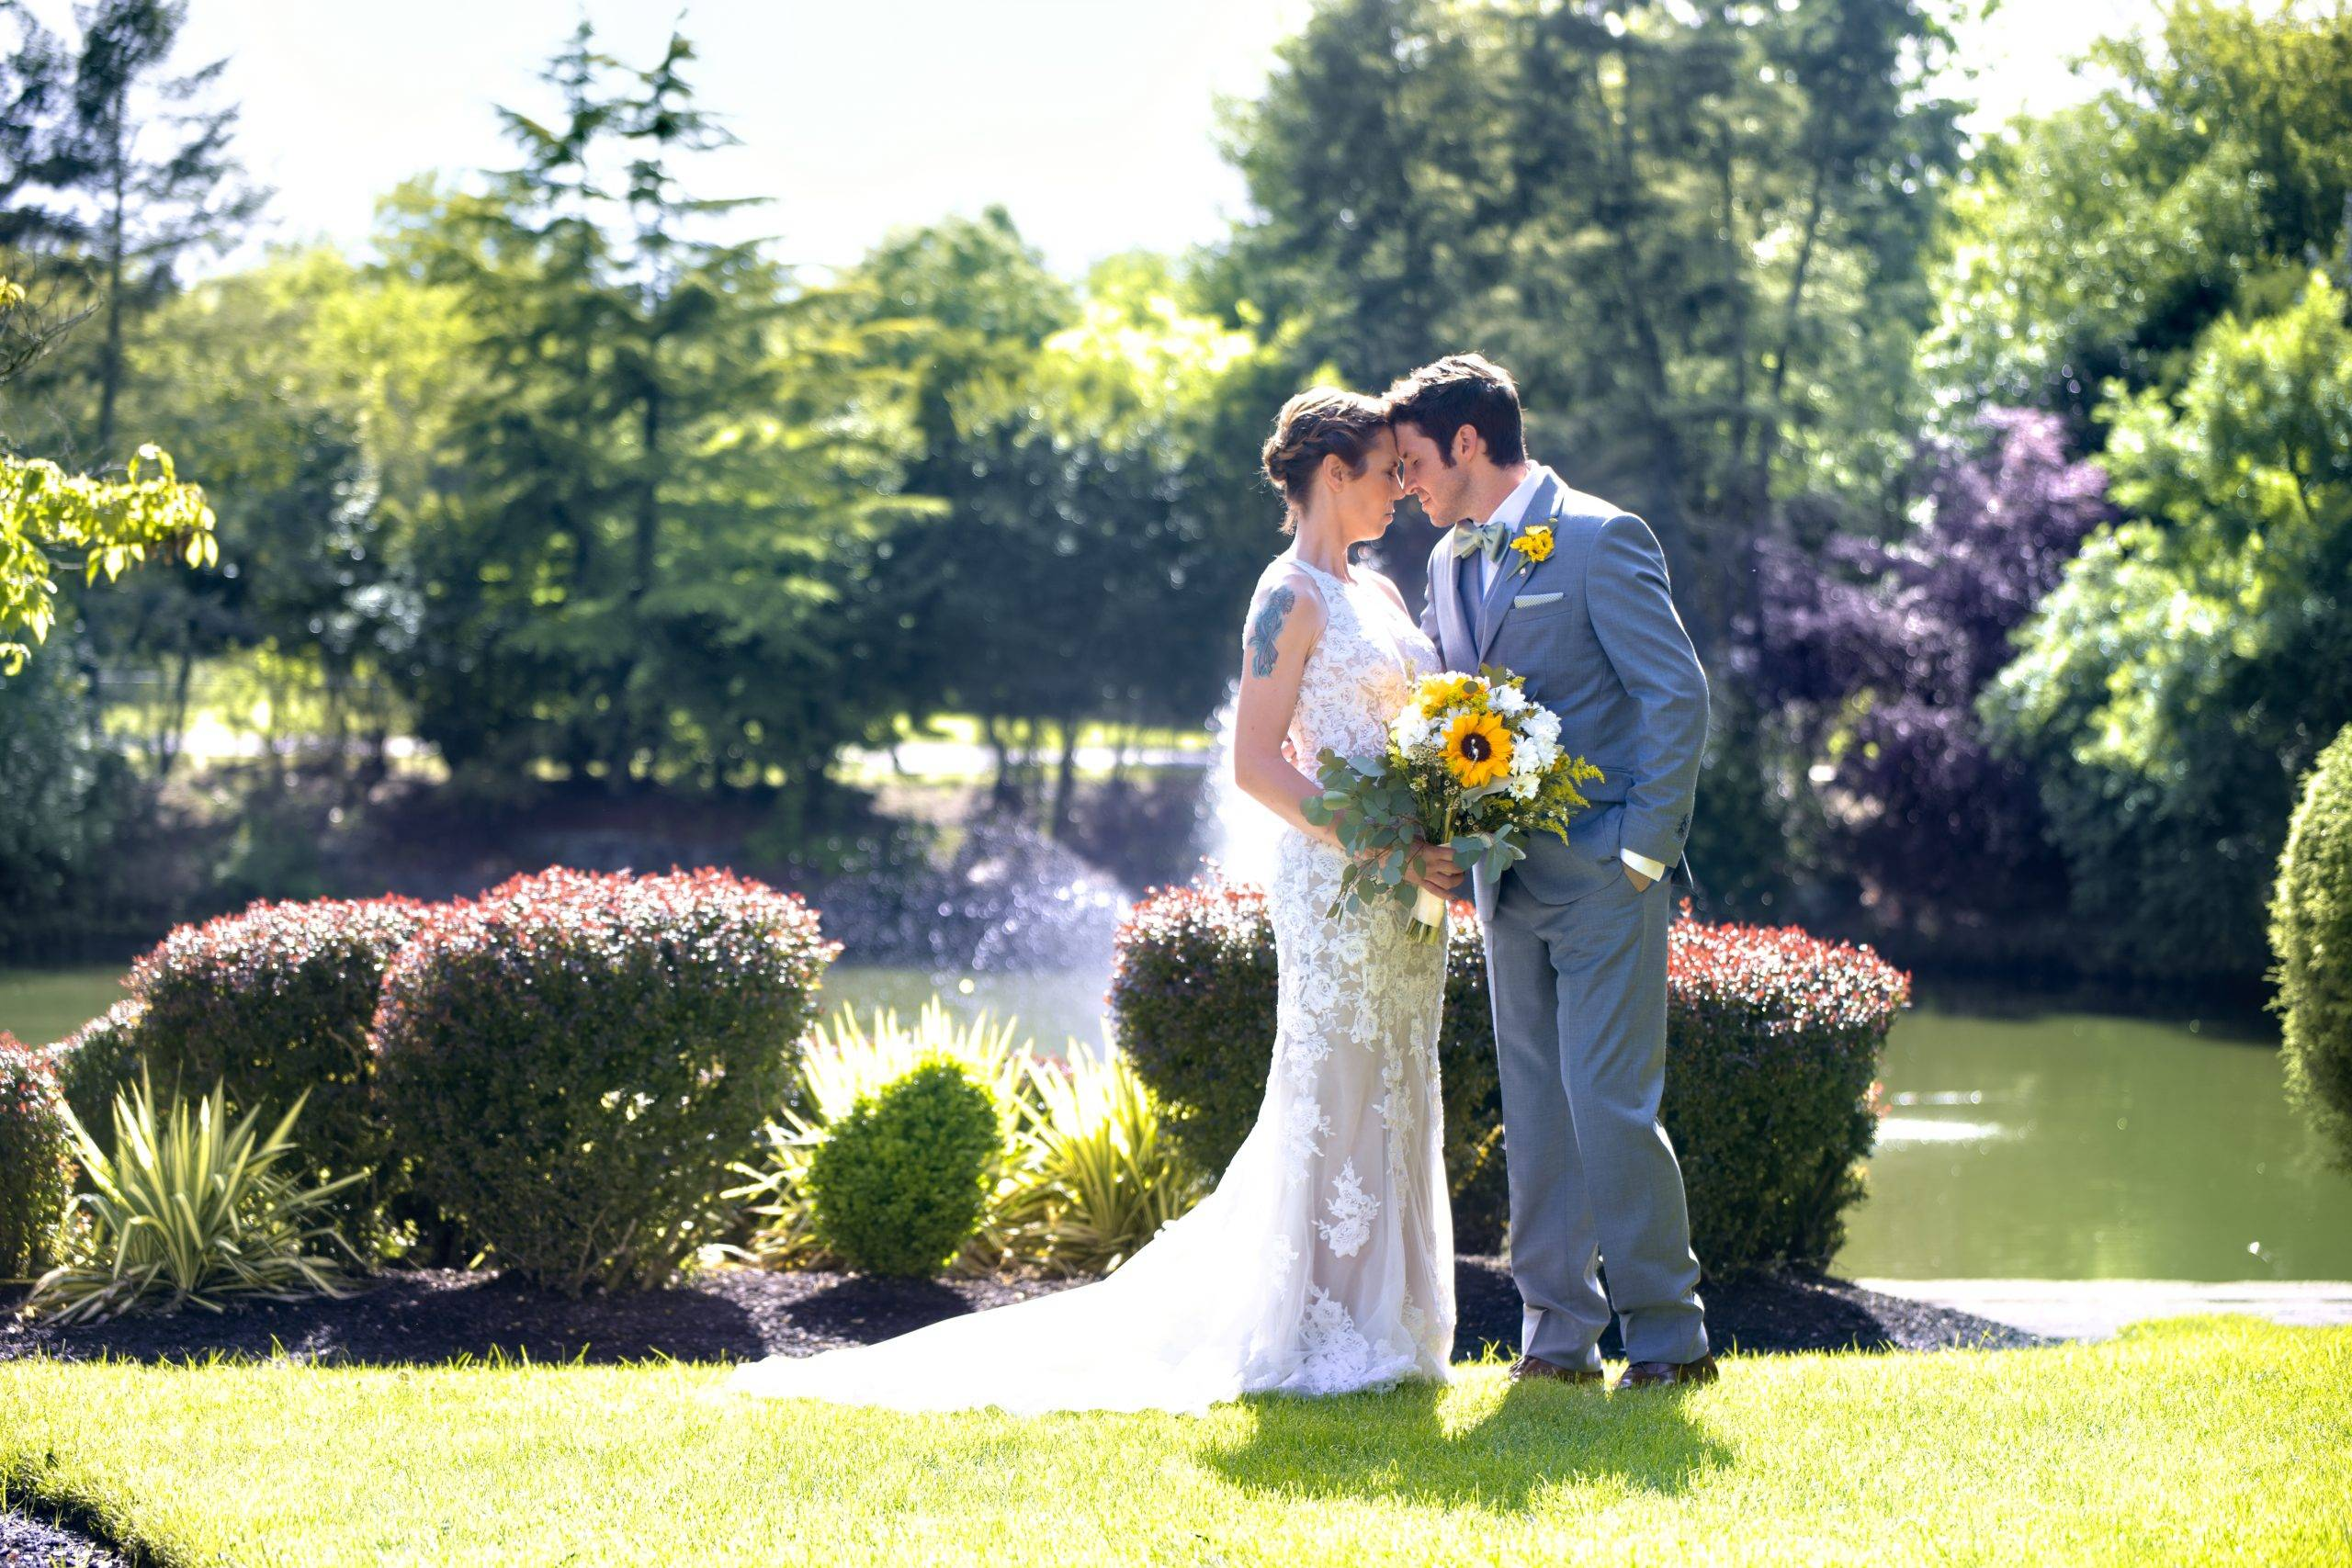 Bridgewater Manor bride and groom in gardens by fountain